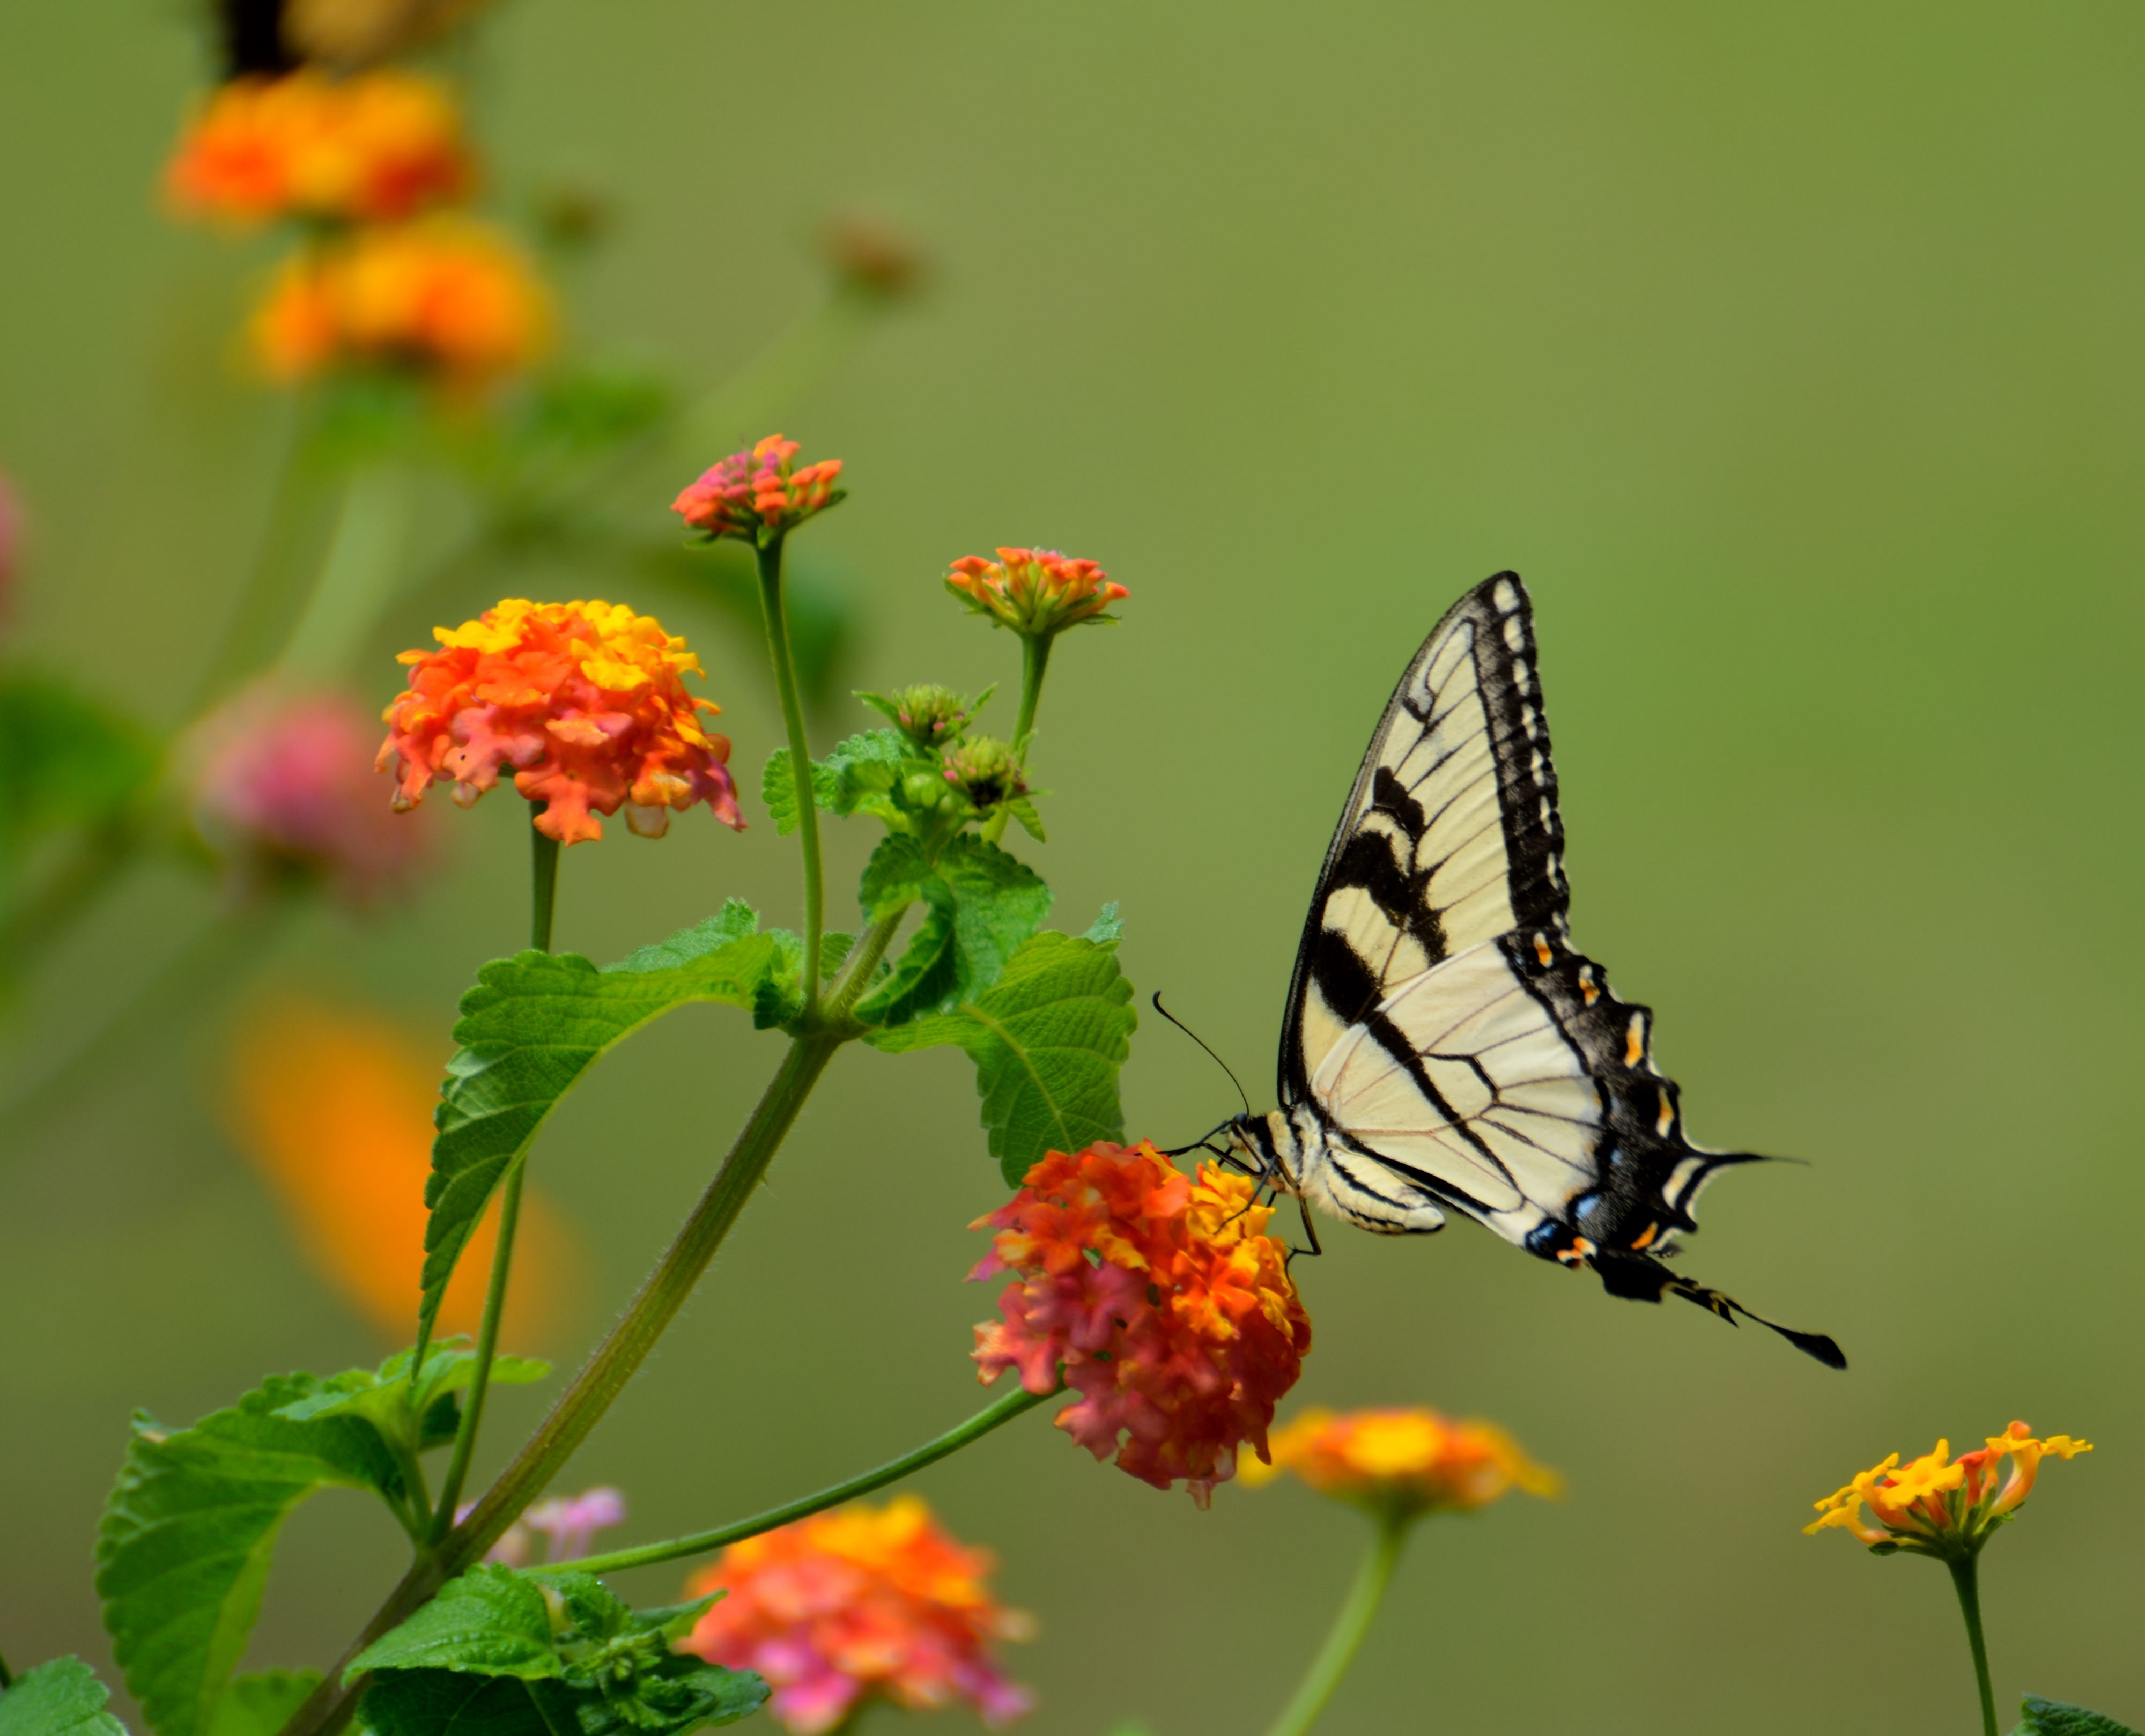 white and black butterfly on yellow flower in macro photography